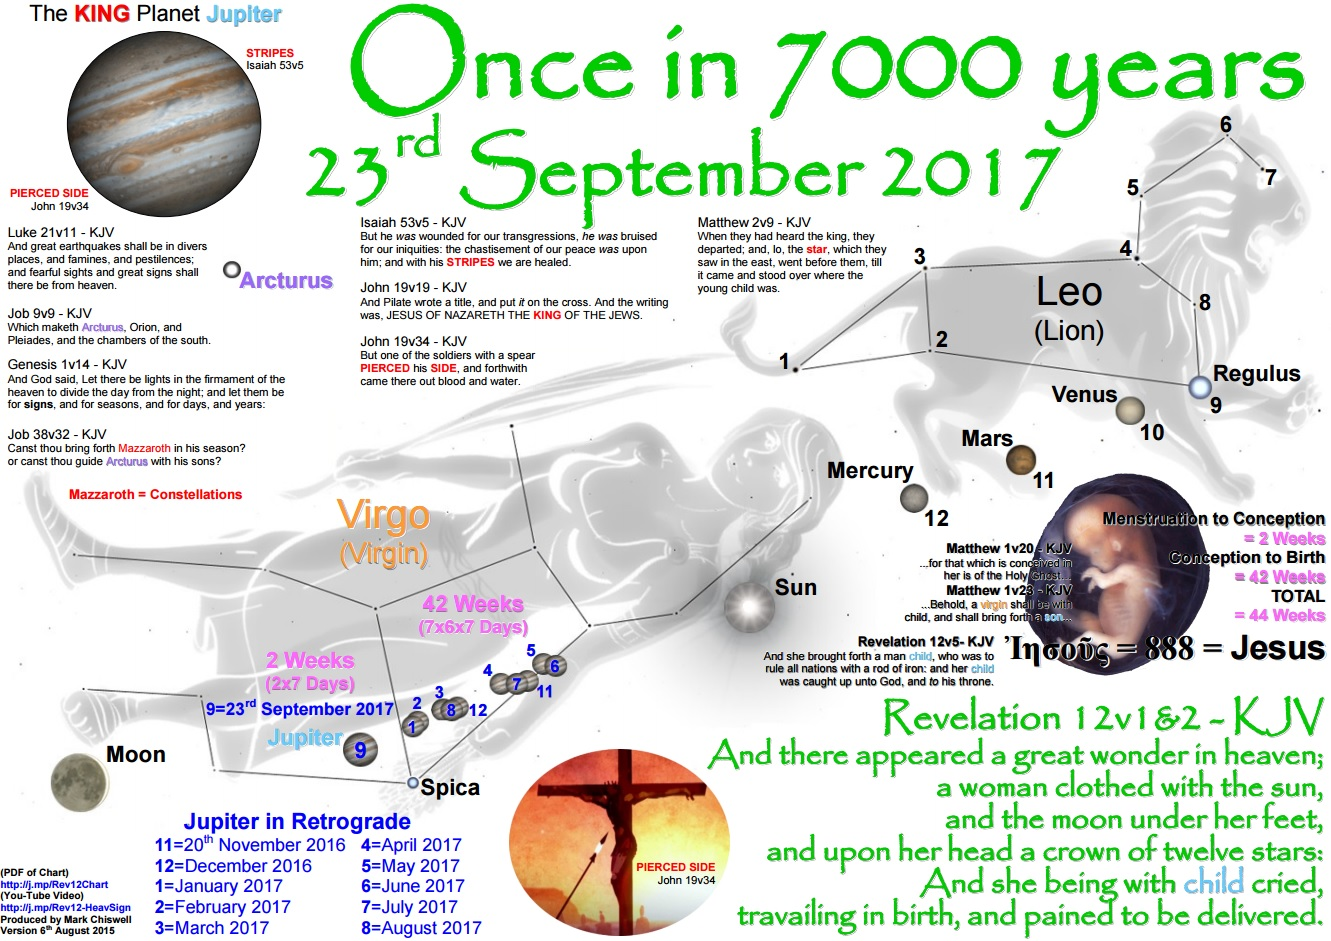 The rastafari mystery school the dogon sigui celebration instead the dogon culture centers around the rotation cycle sirius b which encircles the primary star sirius a every 499 or 50 years biocorpaavc